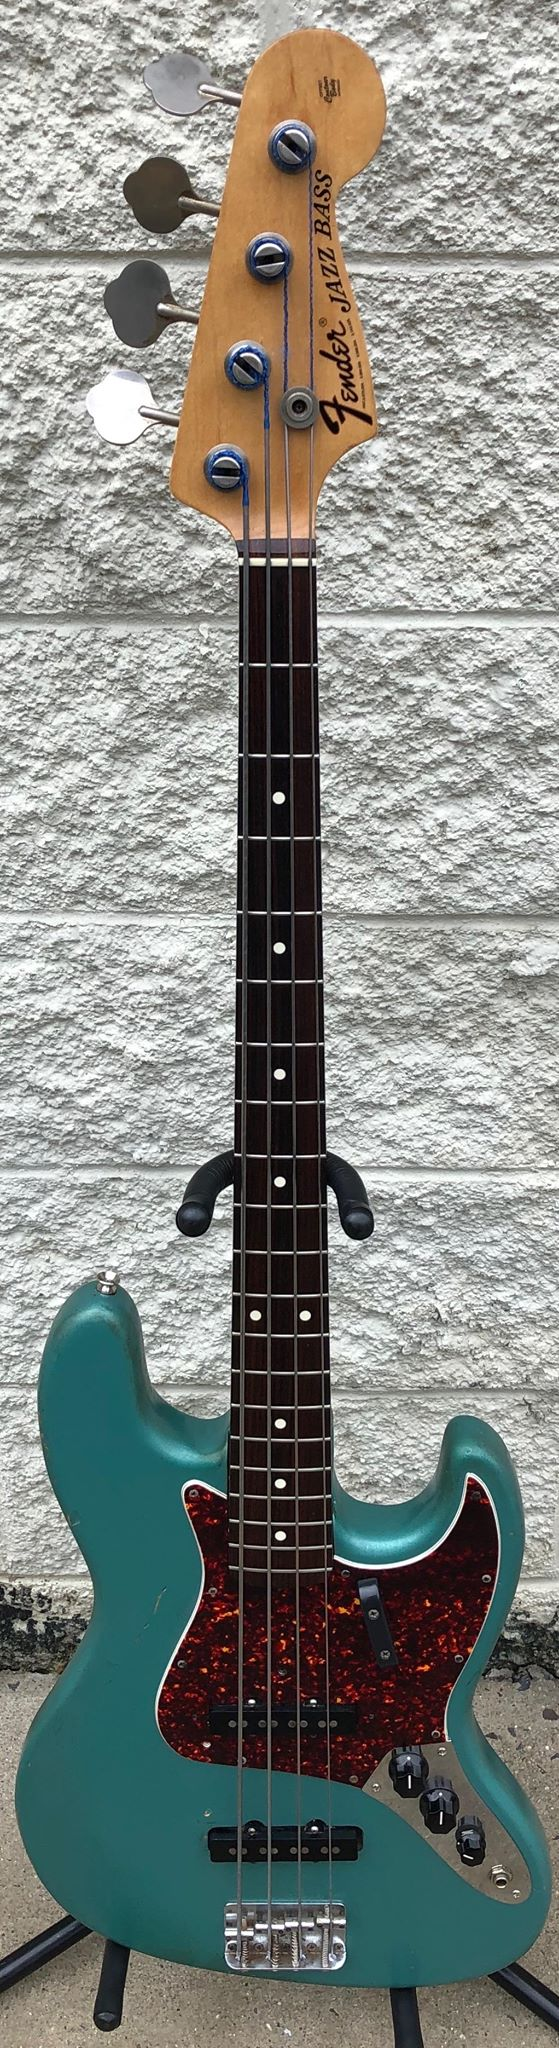 [SOLD] Fender Jazz Bass | 1972 Vintage | Hector Montes Medallion Neck